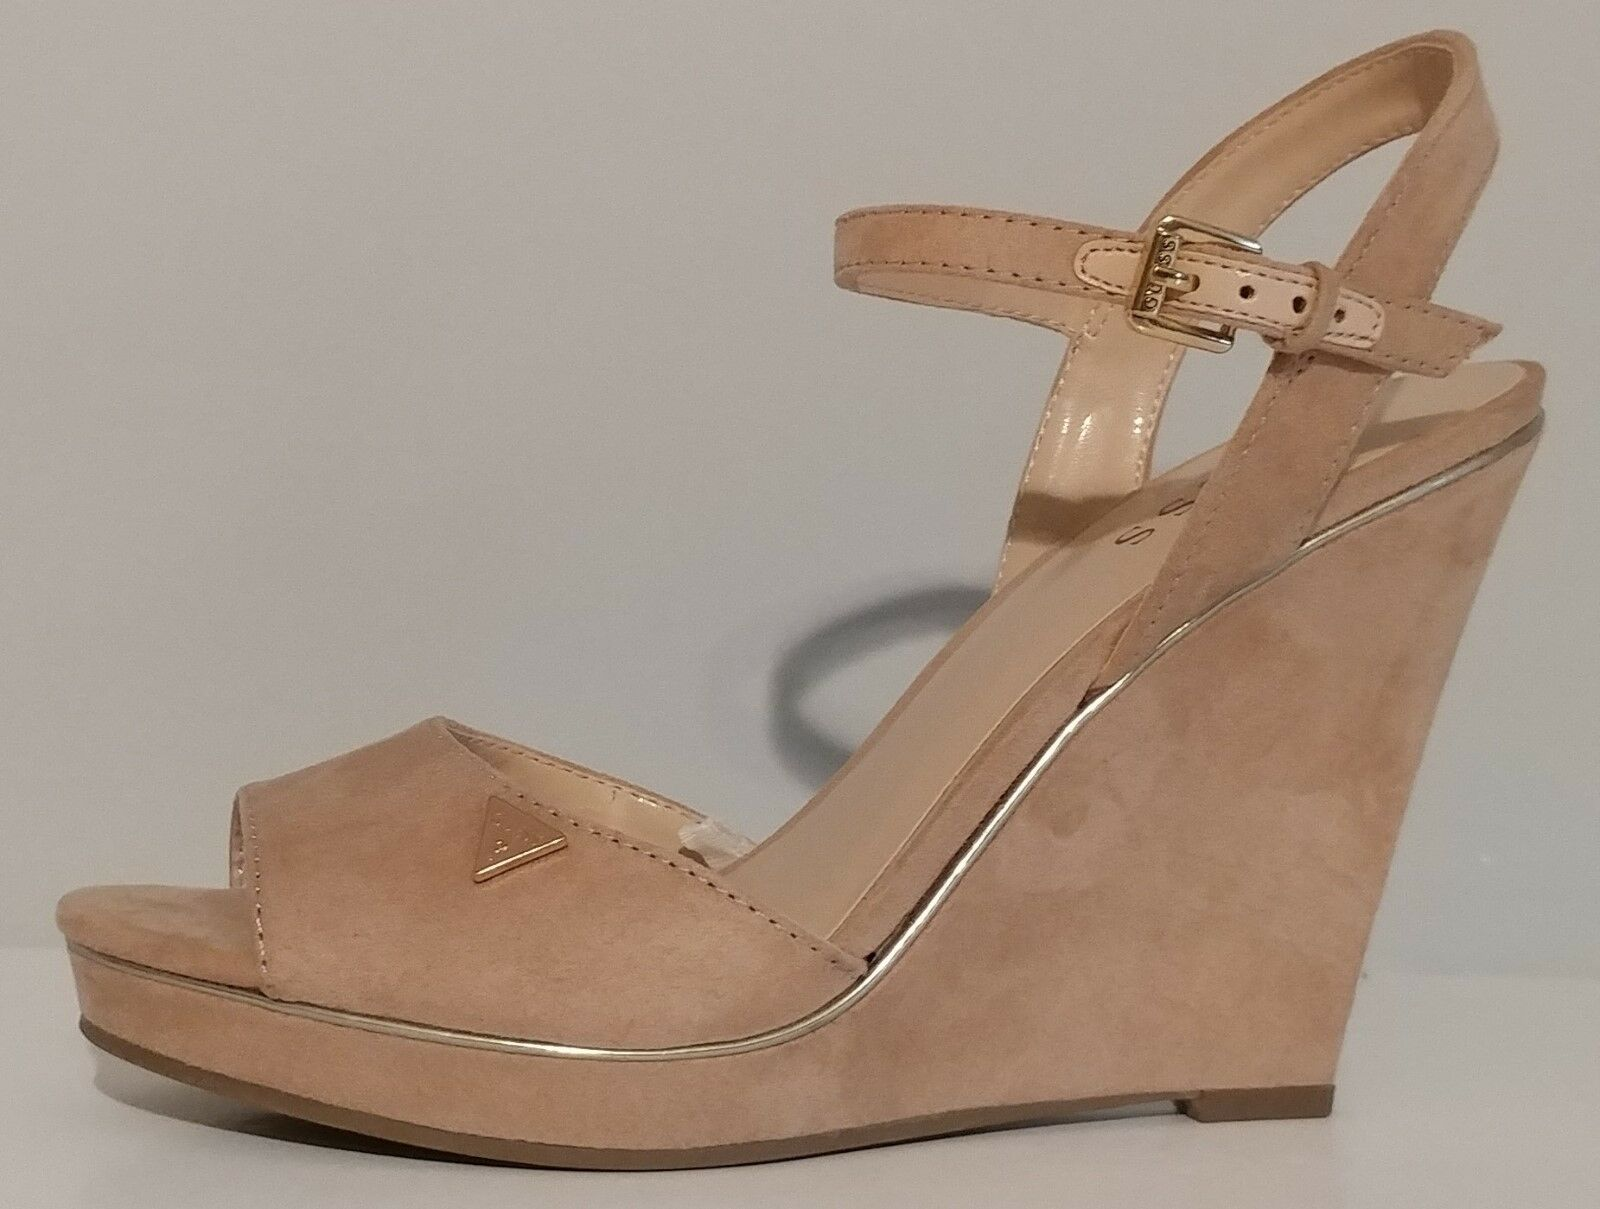 NEW   Guess Beige Beige Beige Suede Wedge Sandales 4